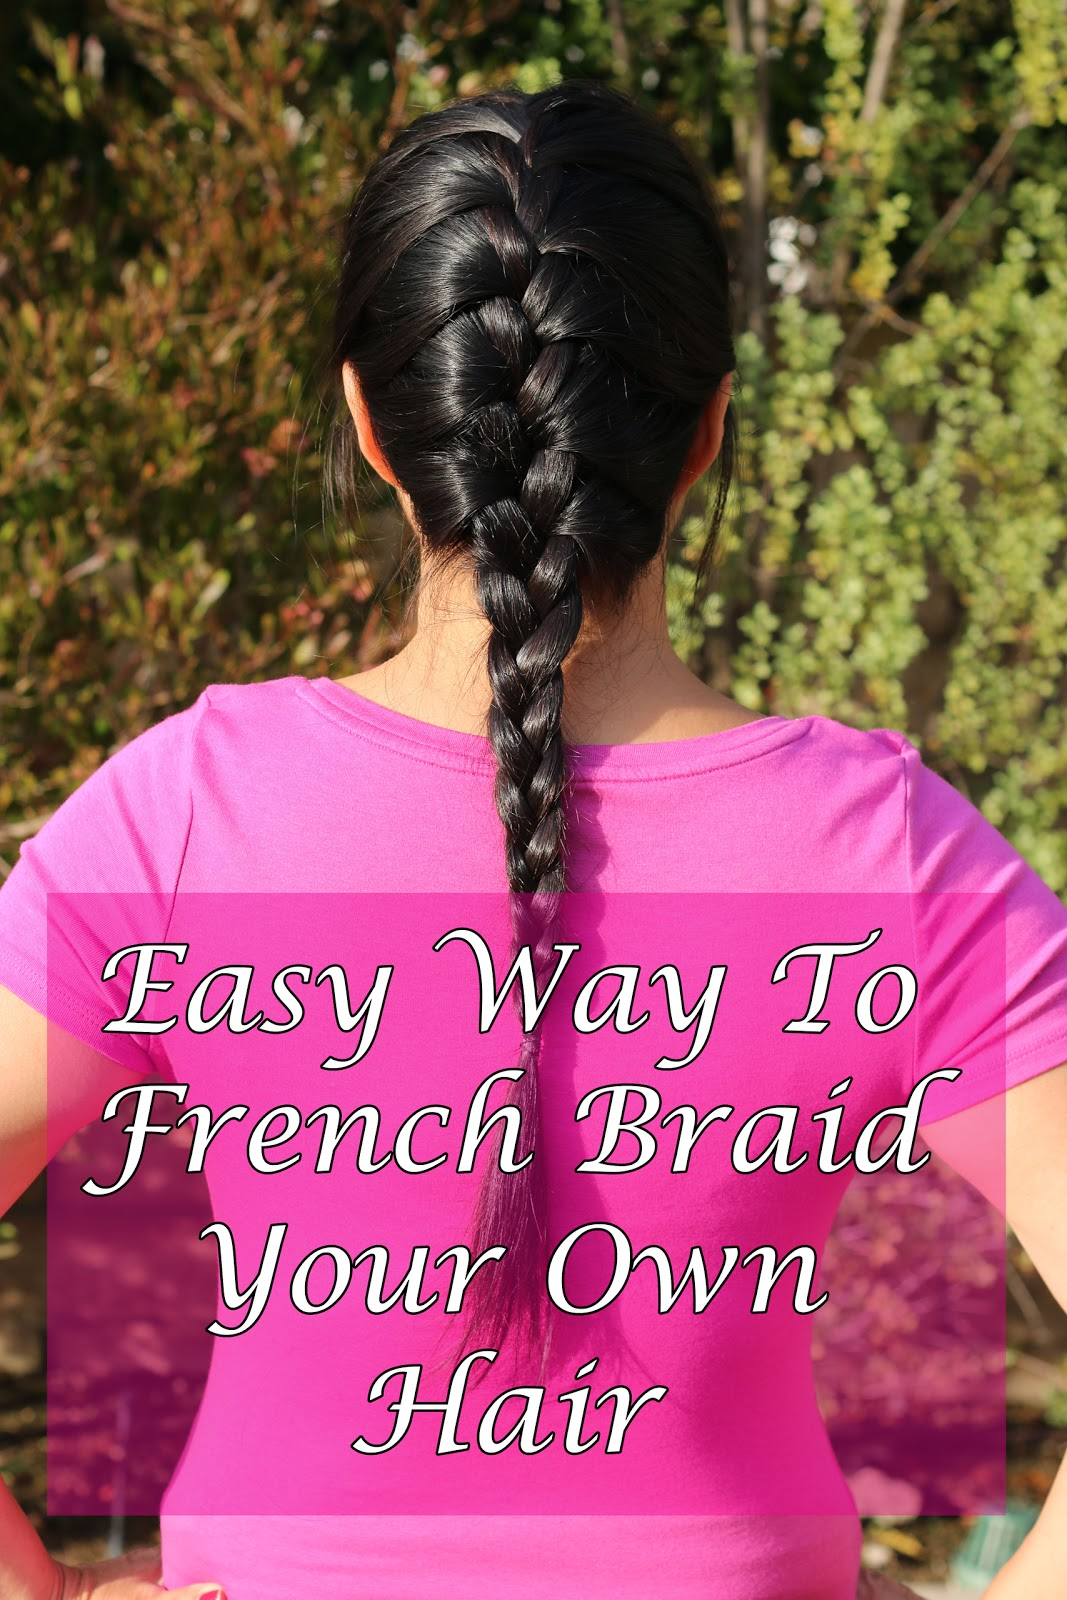 How To French Braid Hair Black Hair Solution For How To For Dummies